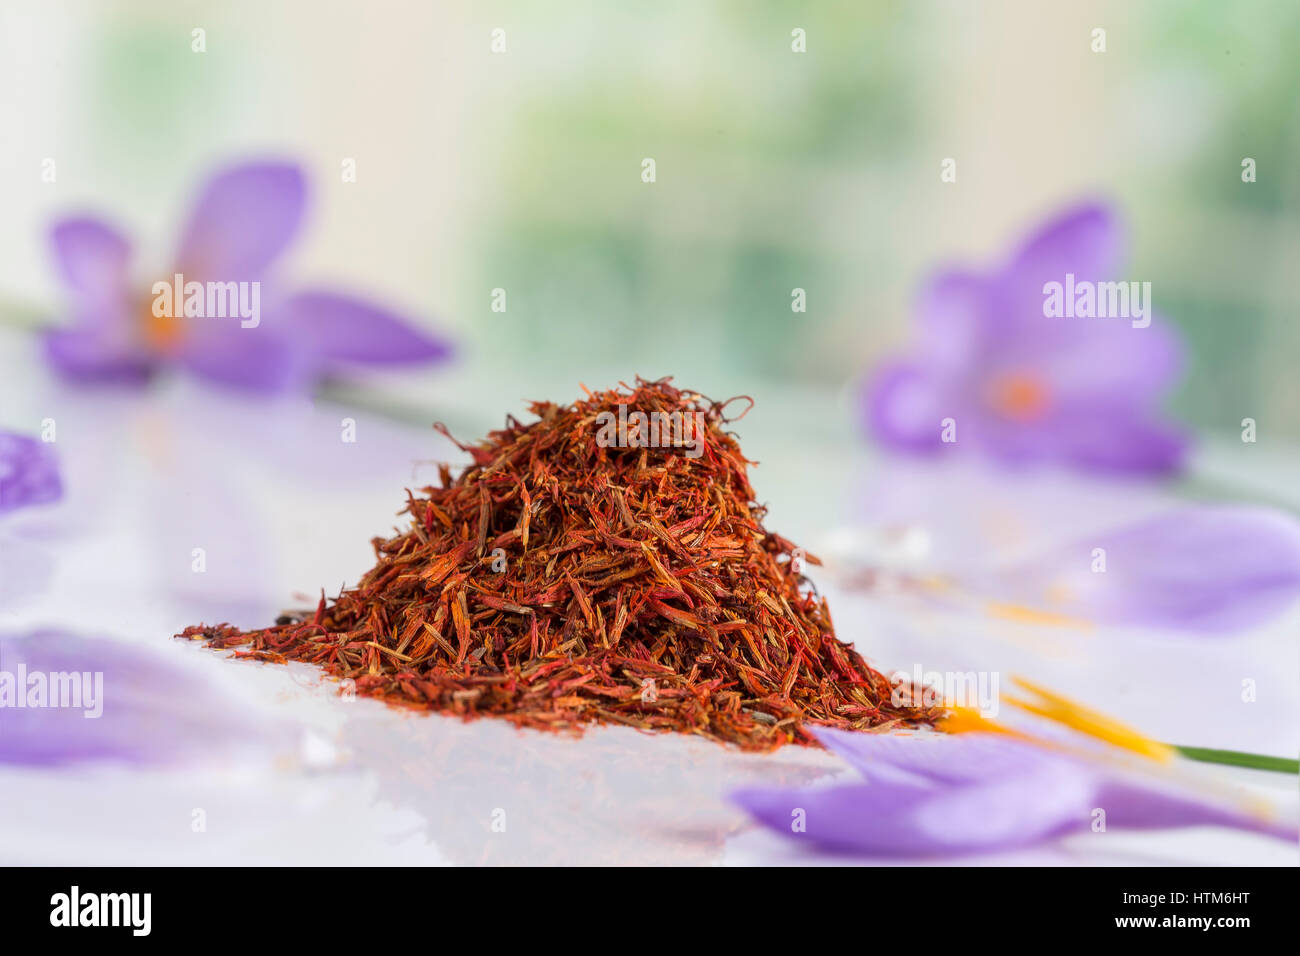 Flower crocus and dried saffron spice on white background. - Stock Image